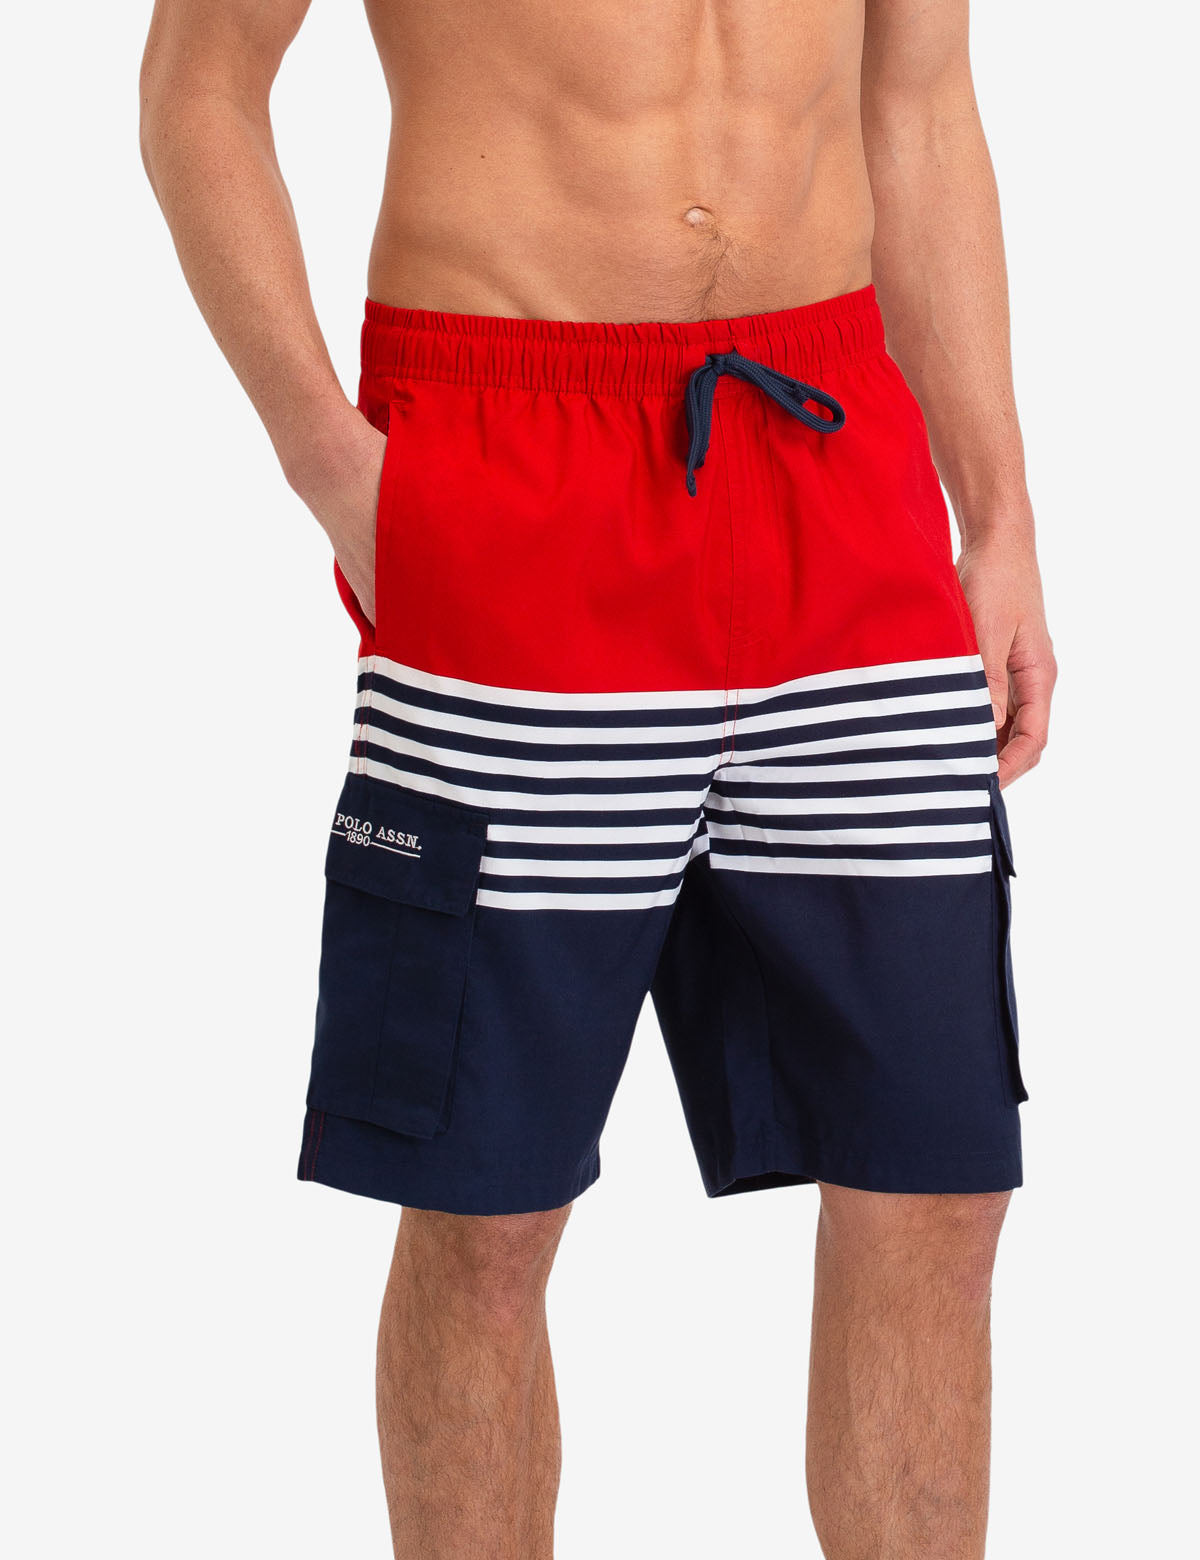 STRIPE CARGO SWIM TRUNKS - U.S. Polo Assn.